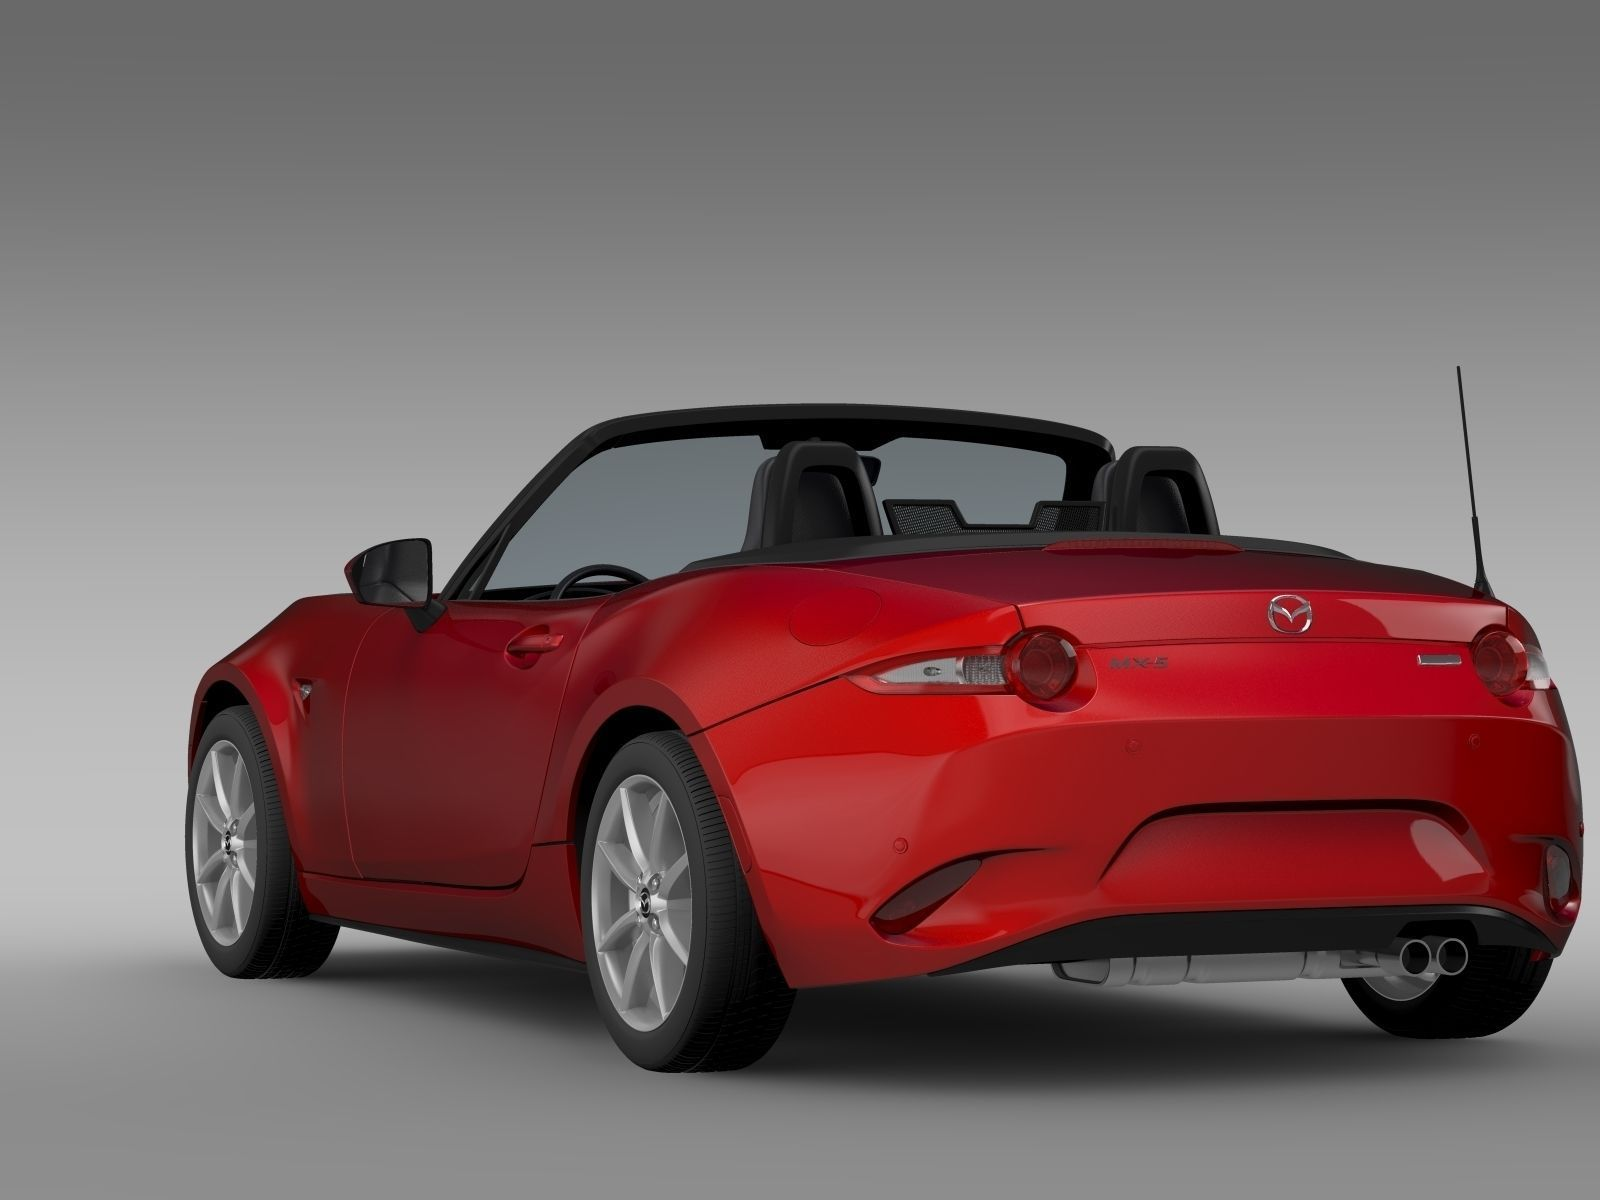 Mazda Mx 5 Nd : mazda mx 5 nd 2016 3d model ~ Aude.kayakingforconservation.com Haus und Dekorationen